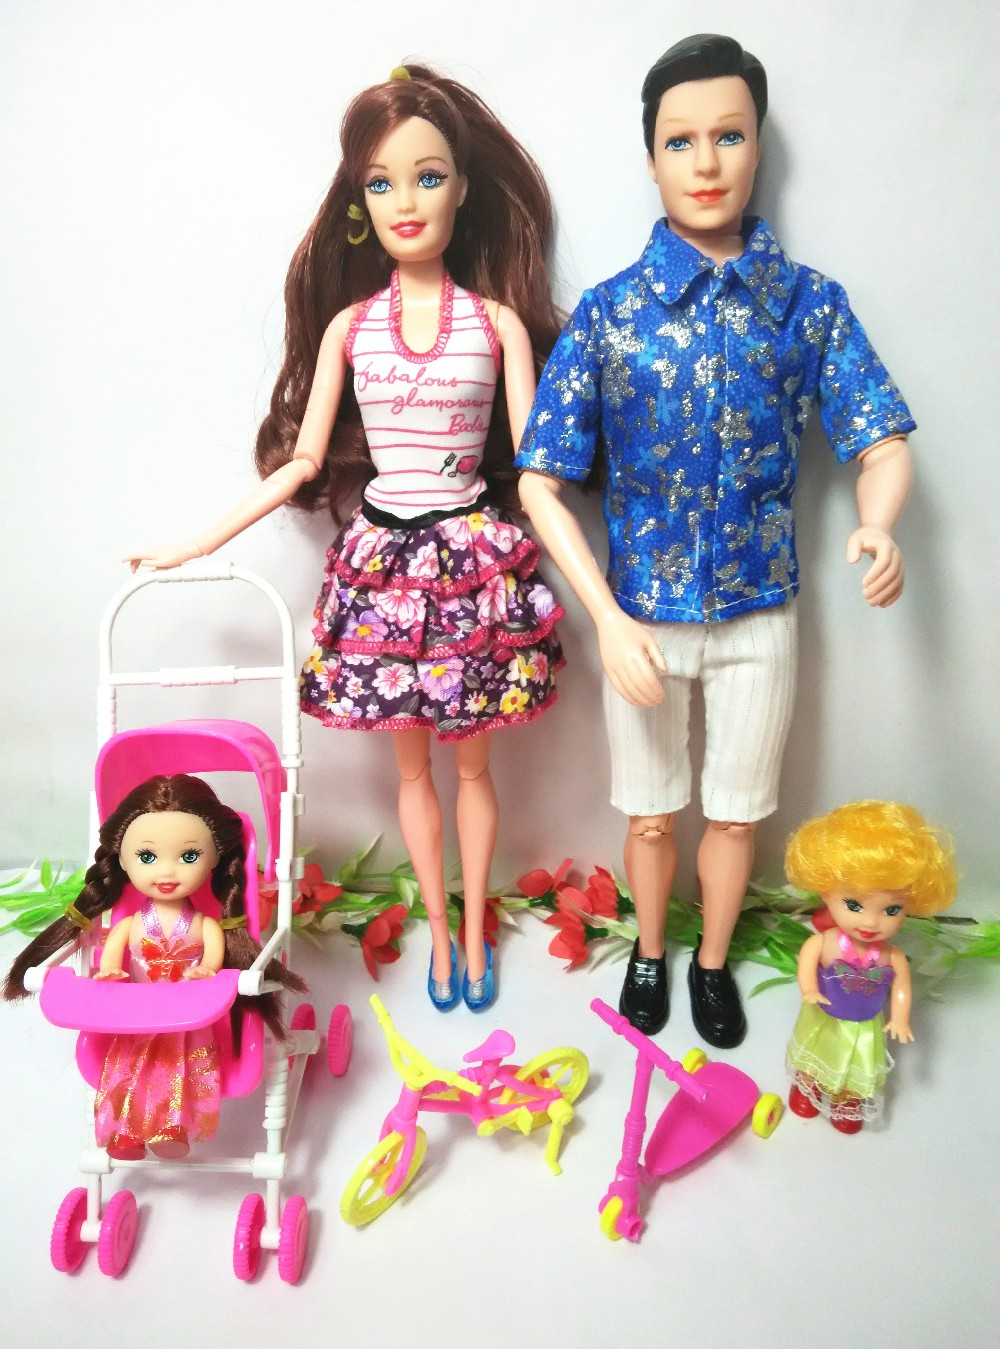 (Trend Doll + bag + Toy umbrella) Dolls Mannequin Fashion Moveable Joint Physique Traditional Toys Finest Present Equipment For Barbie,YF-02